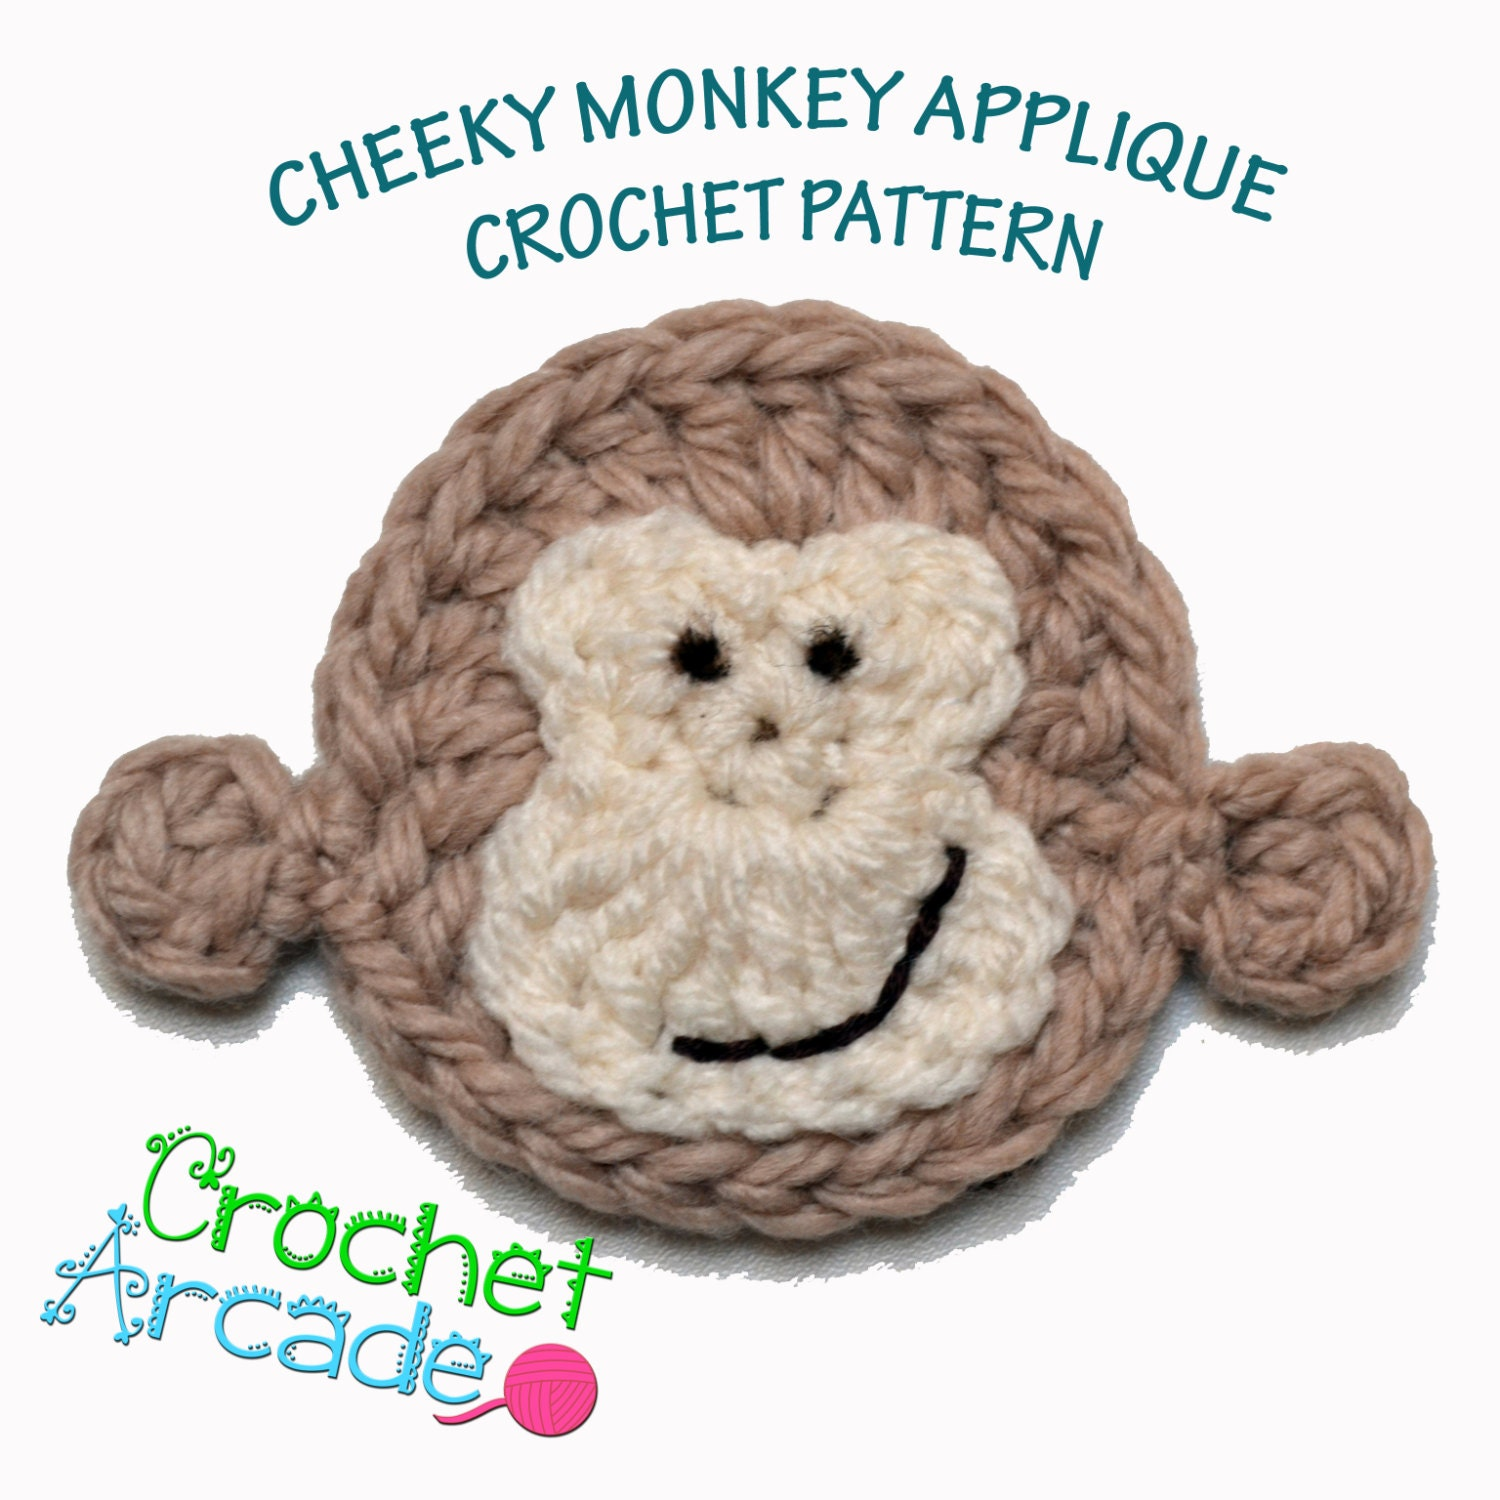 Ahoy! Drop Anchor for Nautical Crochet Patterns! - moogly